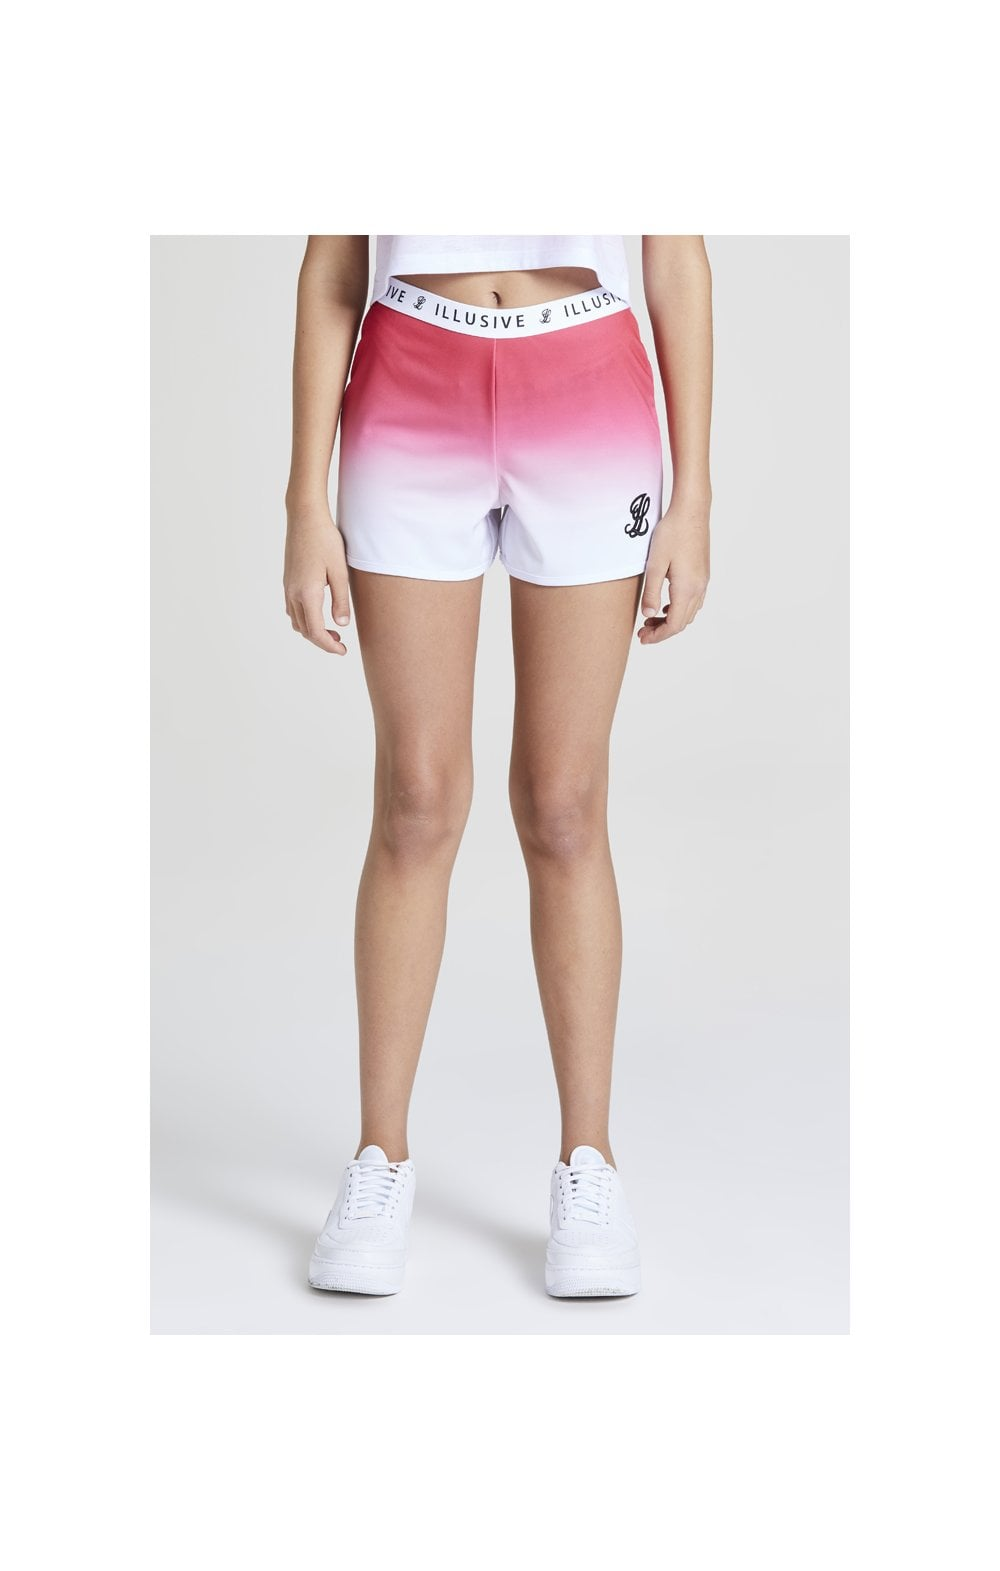 Load image into Gallery viewer, Illusive London Fade Shorts – Pink & White